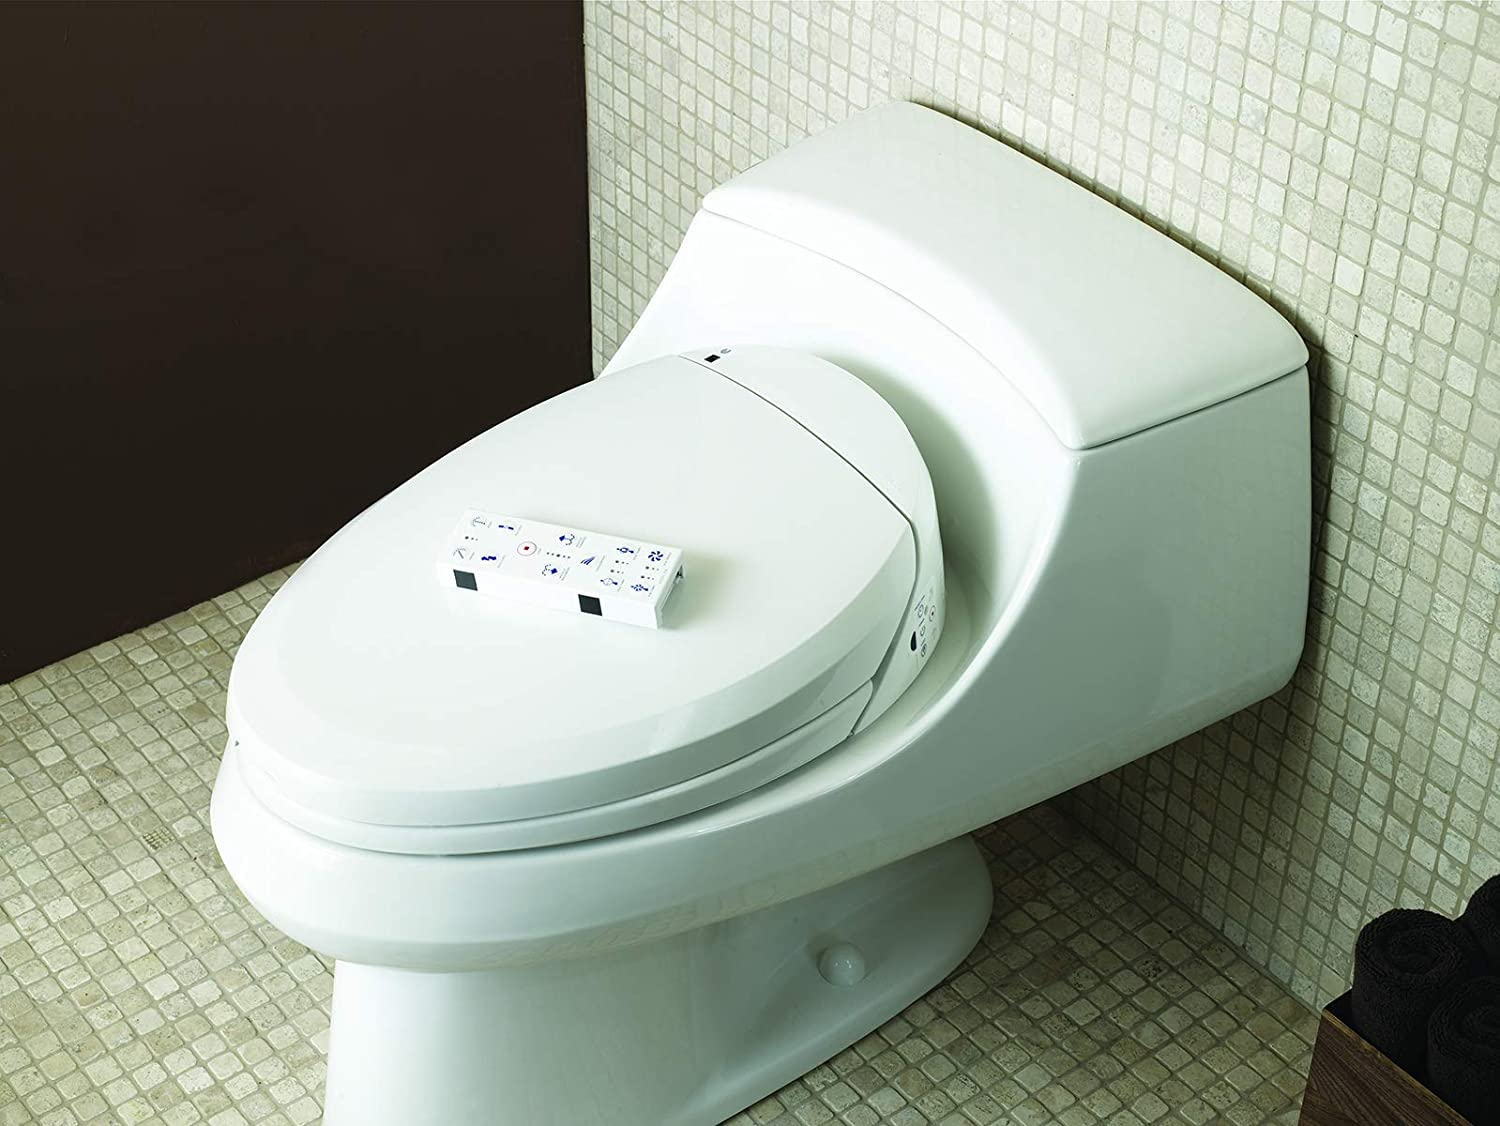 Kohler K 4709 0 C3 200 Elongated Warm Water Bidet Toilet Seat White With Quiet Close Lid And Seat Automatic Deodorization Adjustable Water Temperature Nightlight Heated Seat Warm Air Dryer Amazon Com